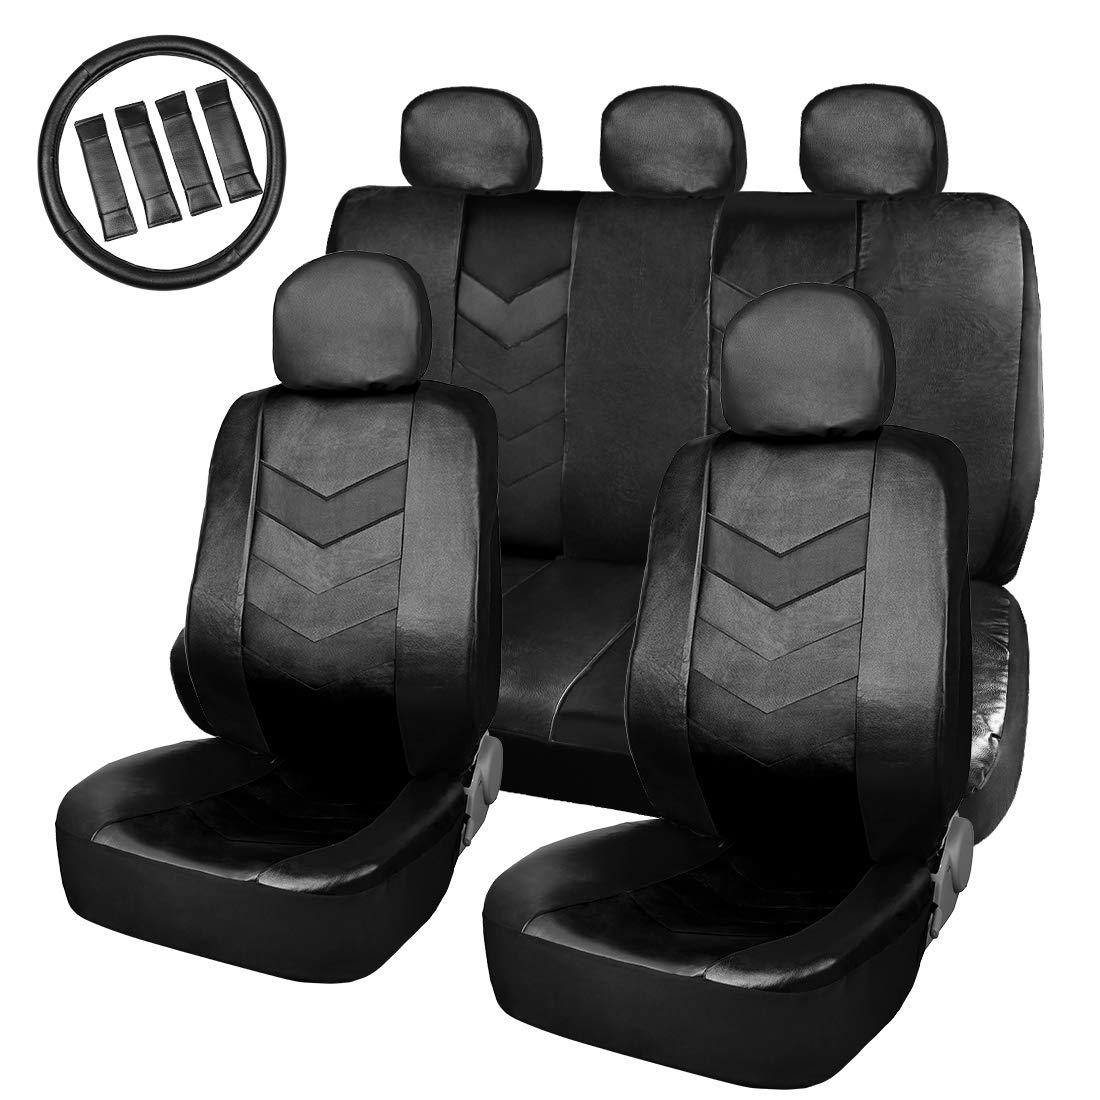 uxcell Black Faux Leather Car Auto Seat Cover Set w//Headrests Steering Wheel Cover a18042700ux0181